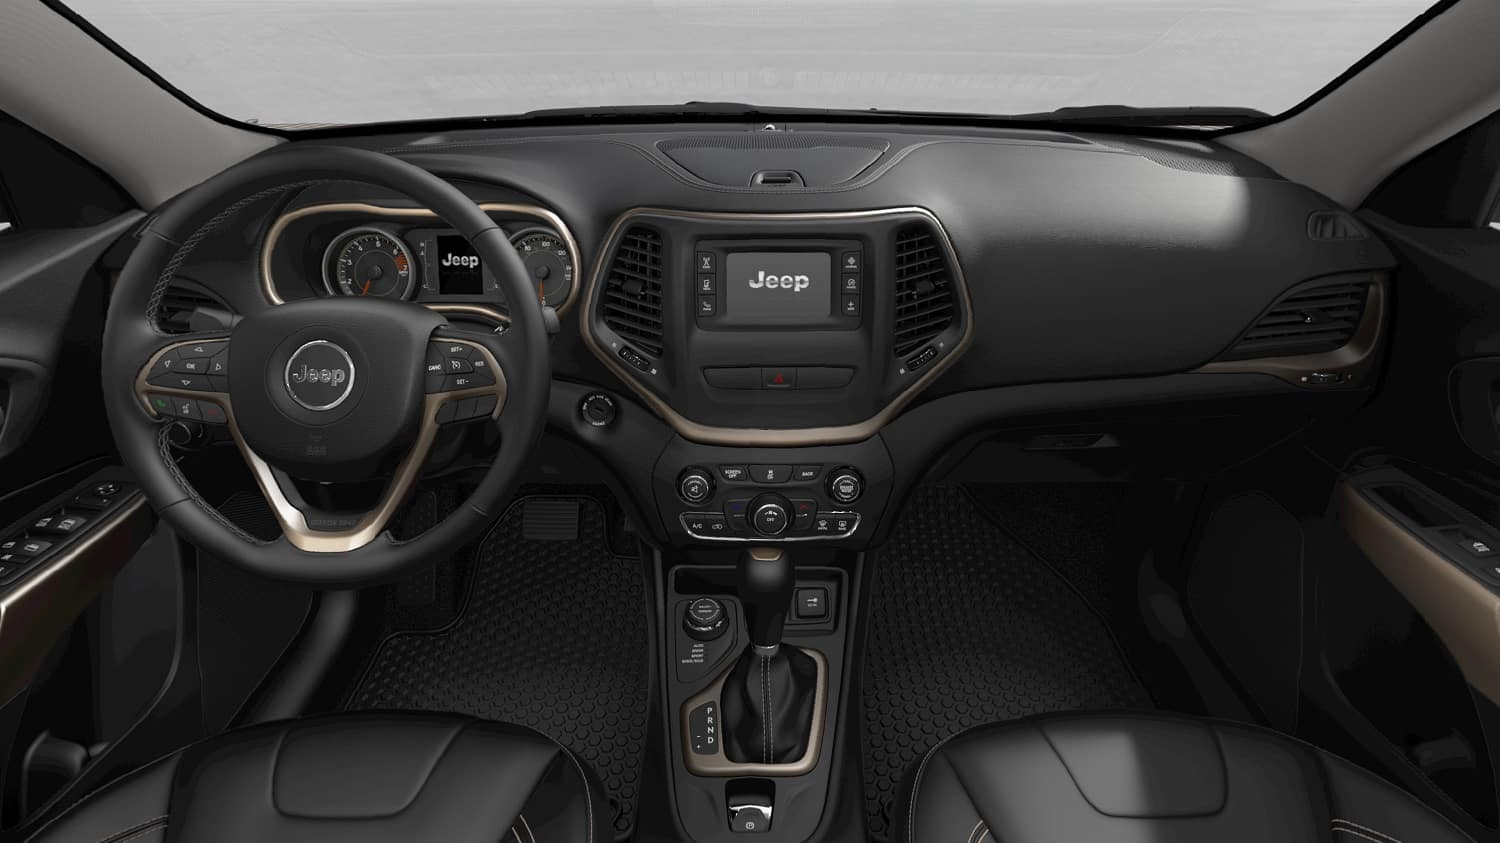 Jeep Cherokee Interior Technology Features